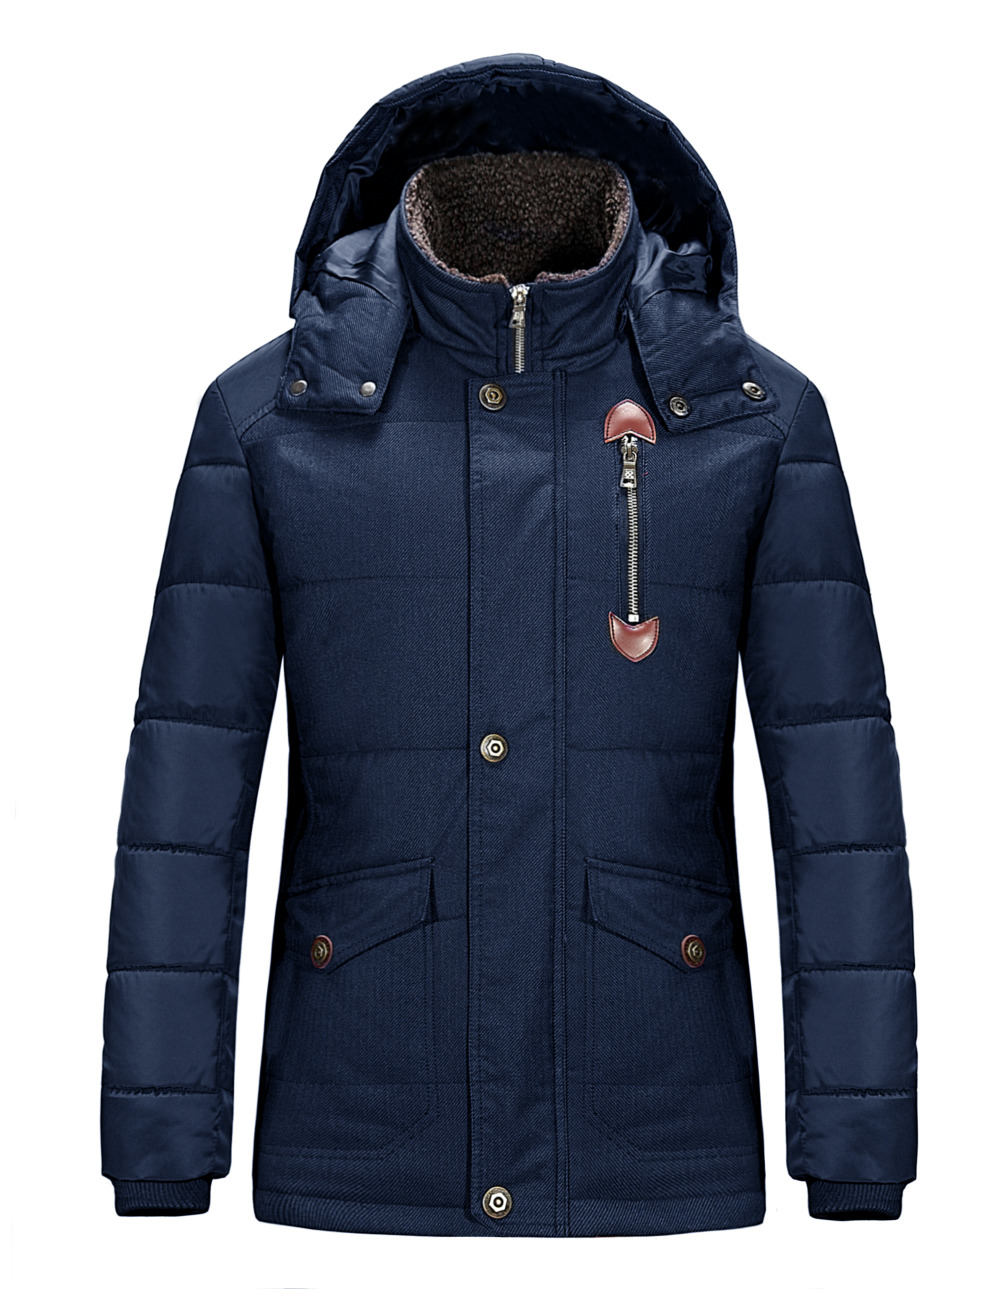 Shopping for a winter parka is an experience that immediately entangles you in a morass of options and complicating factors. When you just want a winter jacket, you don't want to be confused by hunting or ice climbing options. A ski jacket can work for all around use, but most just need a warm outer.